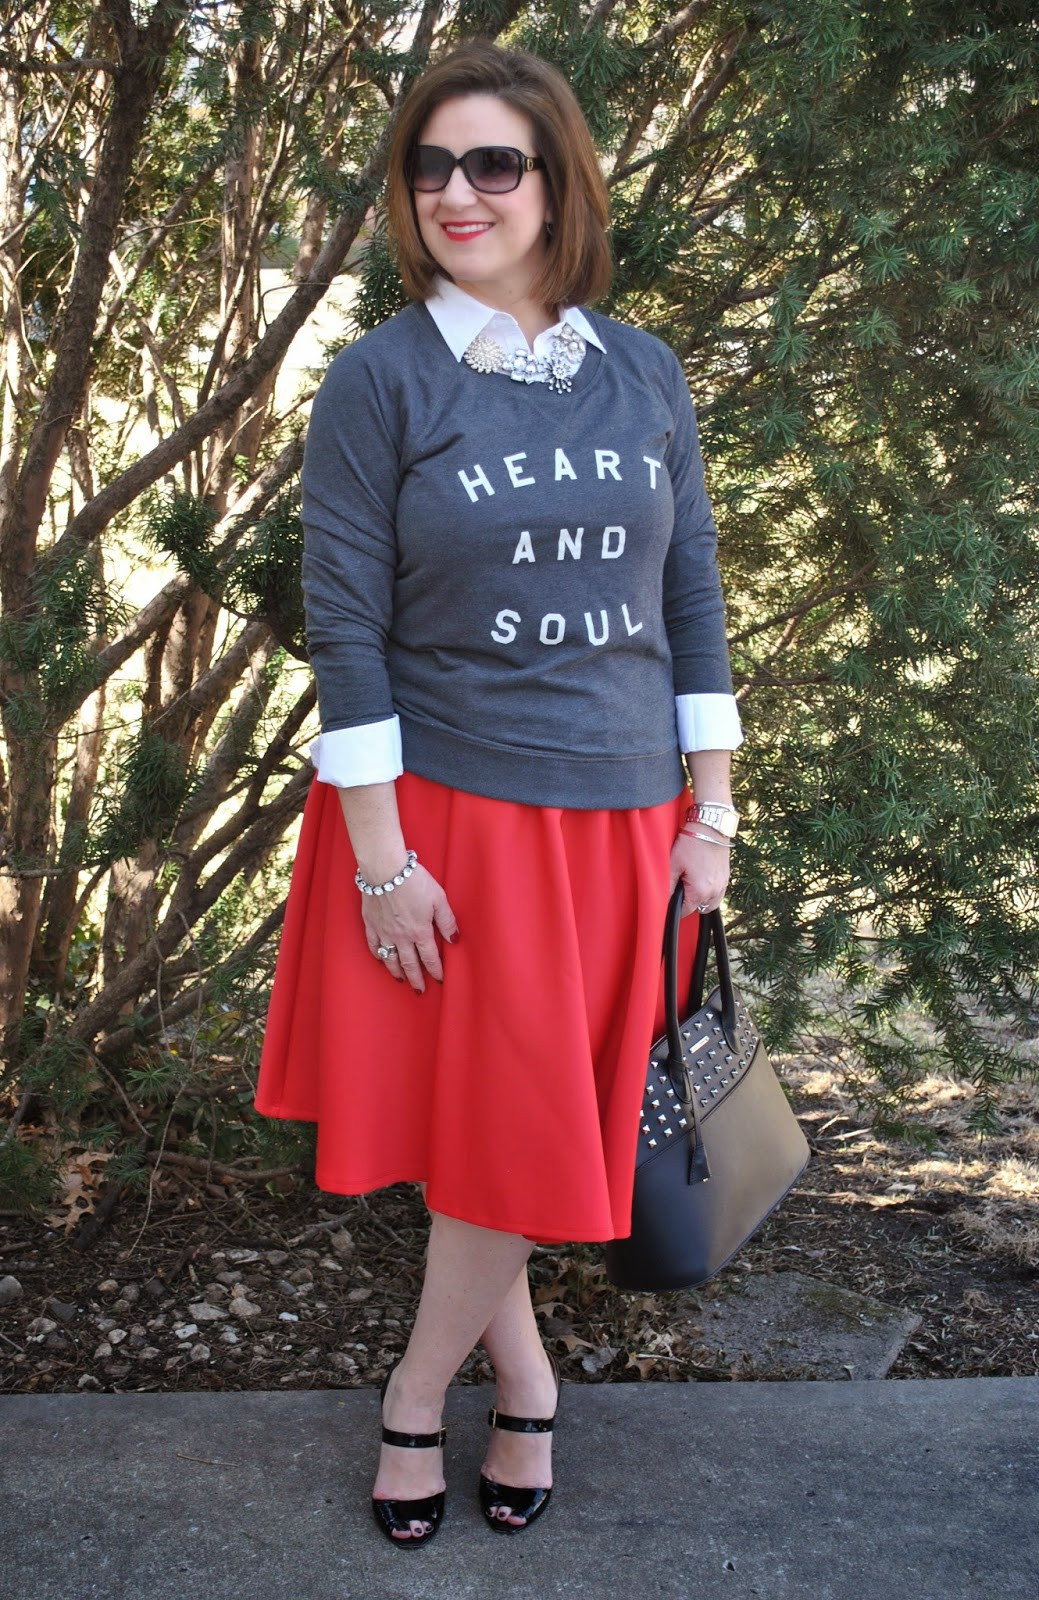 http://akstylemyway.blogspot.com/2014/03/sweatshirt-old-navy-similar-button-down.html